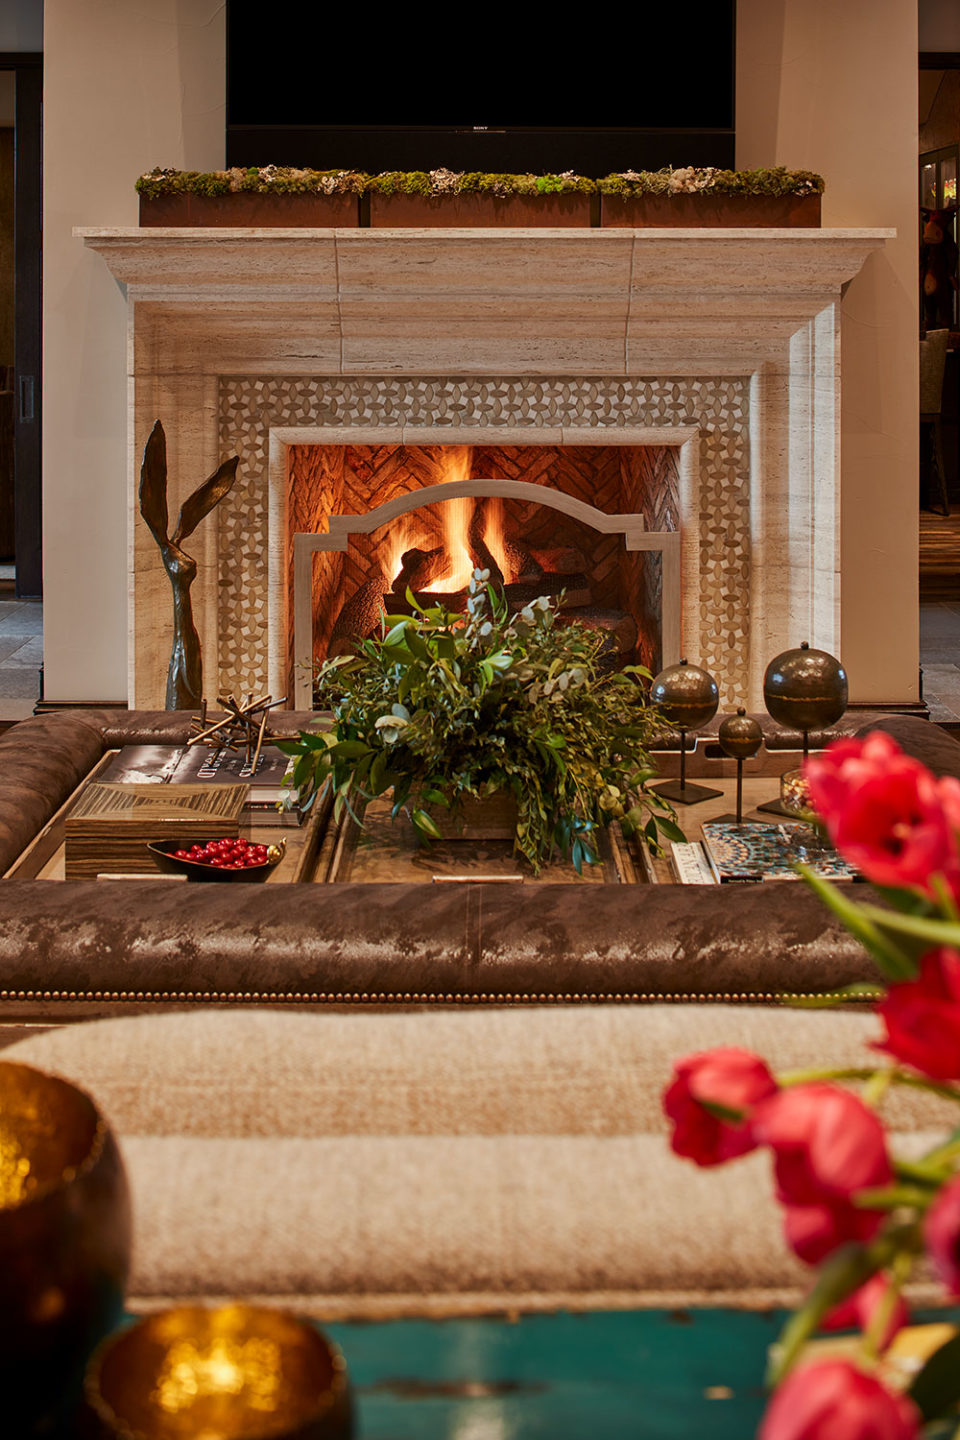 Stone Fireplace with Tile Surround and Herringbone Brick Fire Box